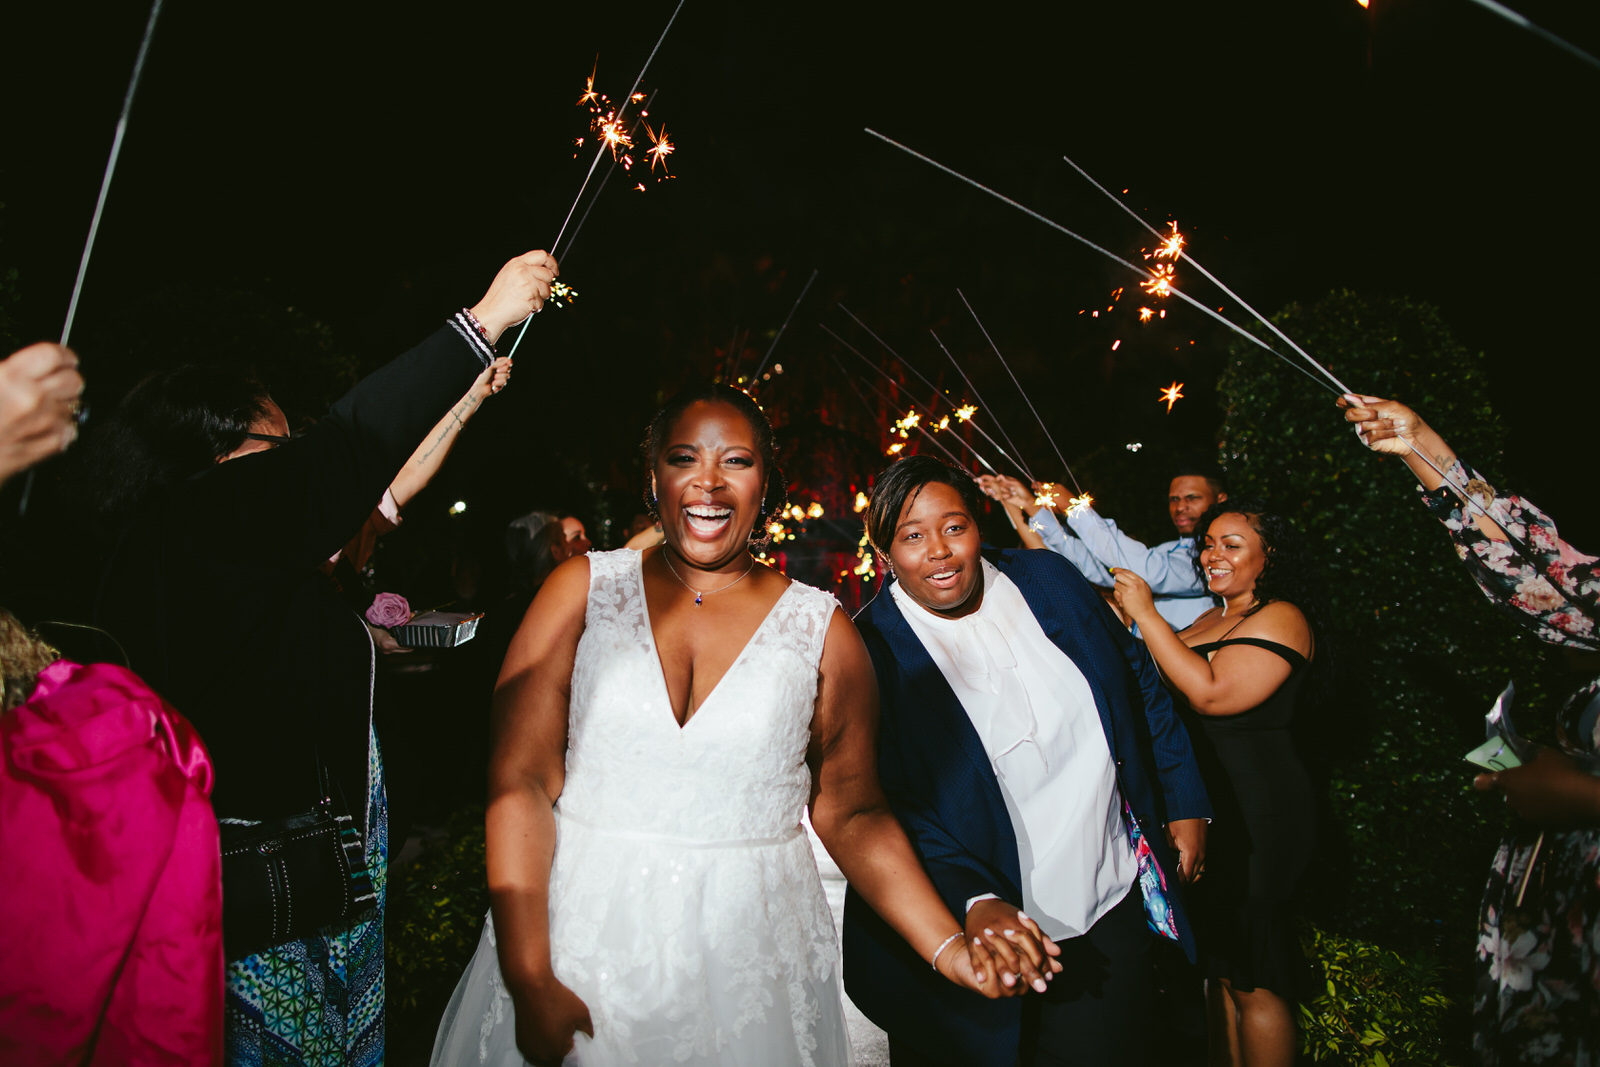 Benvenuto_Wedding_Reception_Tiny_House_Photo_Sparkler_Exit.jpg